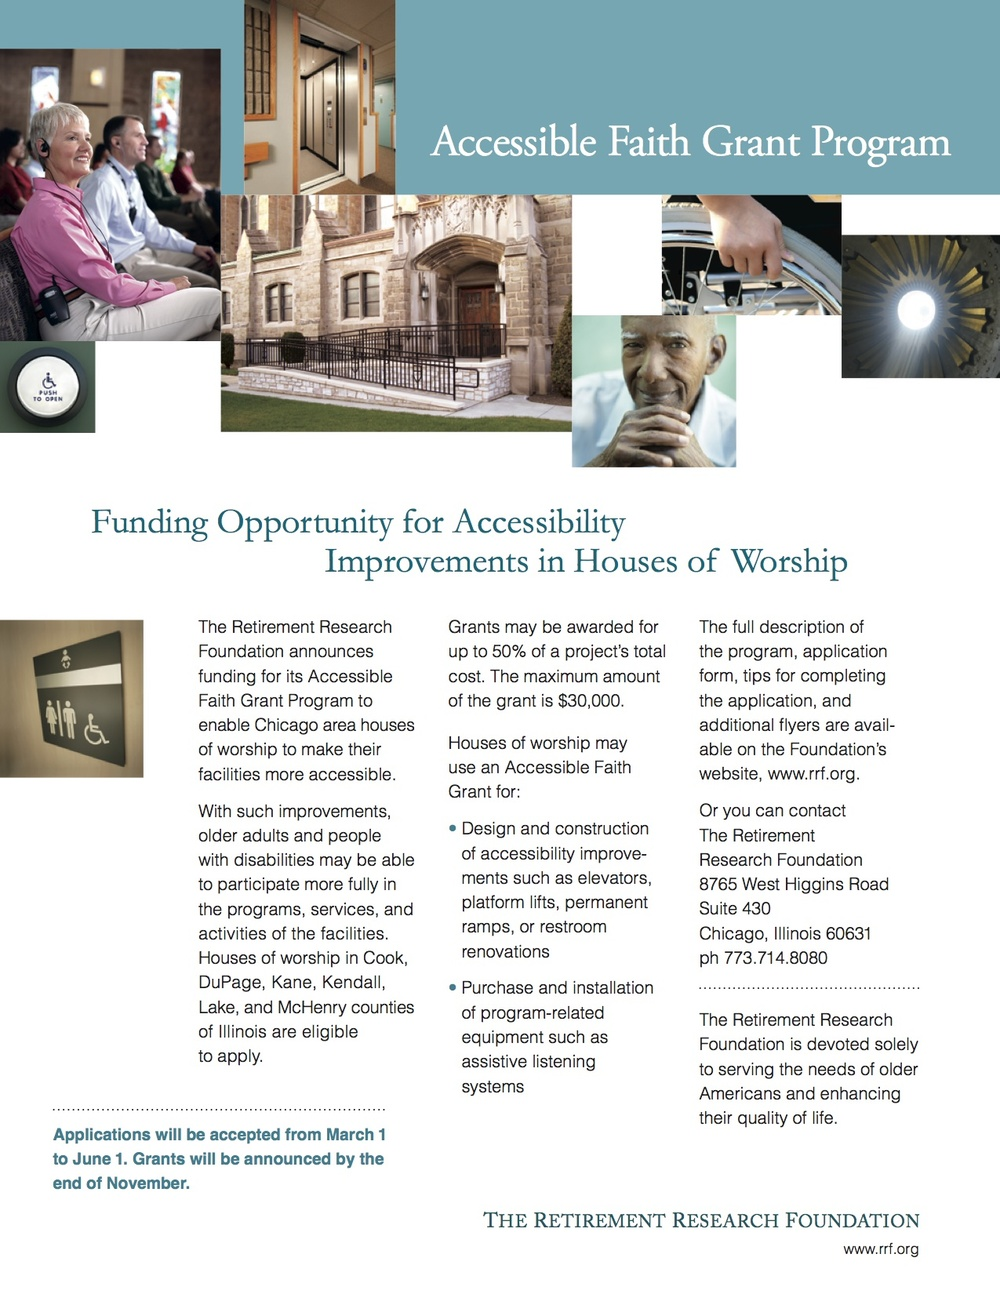 Accessible Faith Grant Flyer Final 12-20-12.jpg